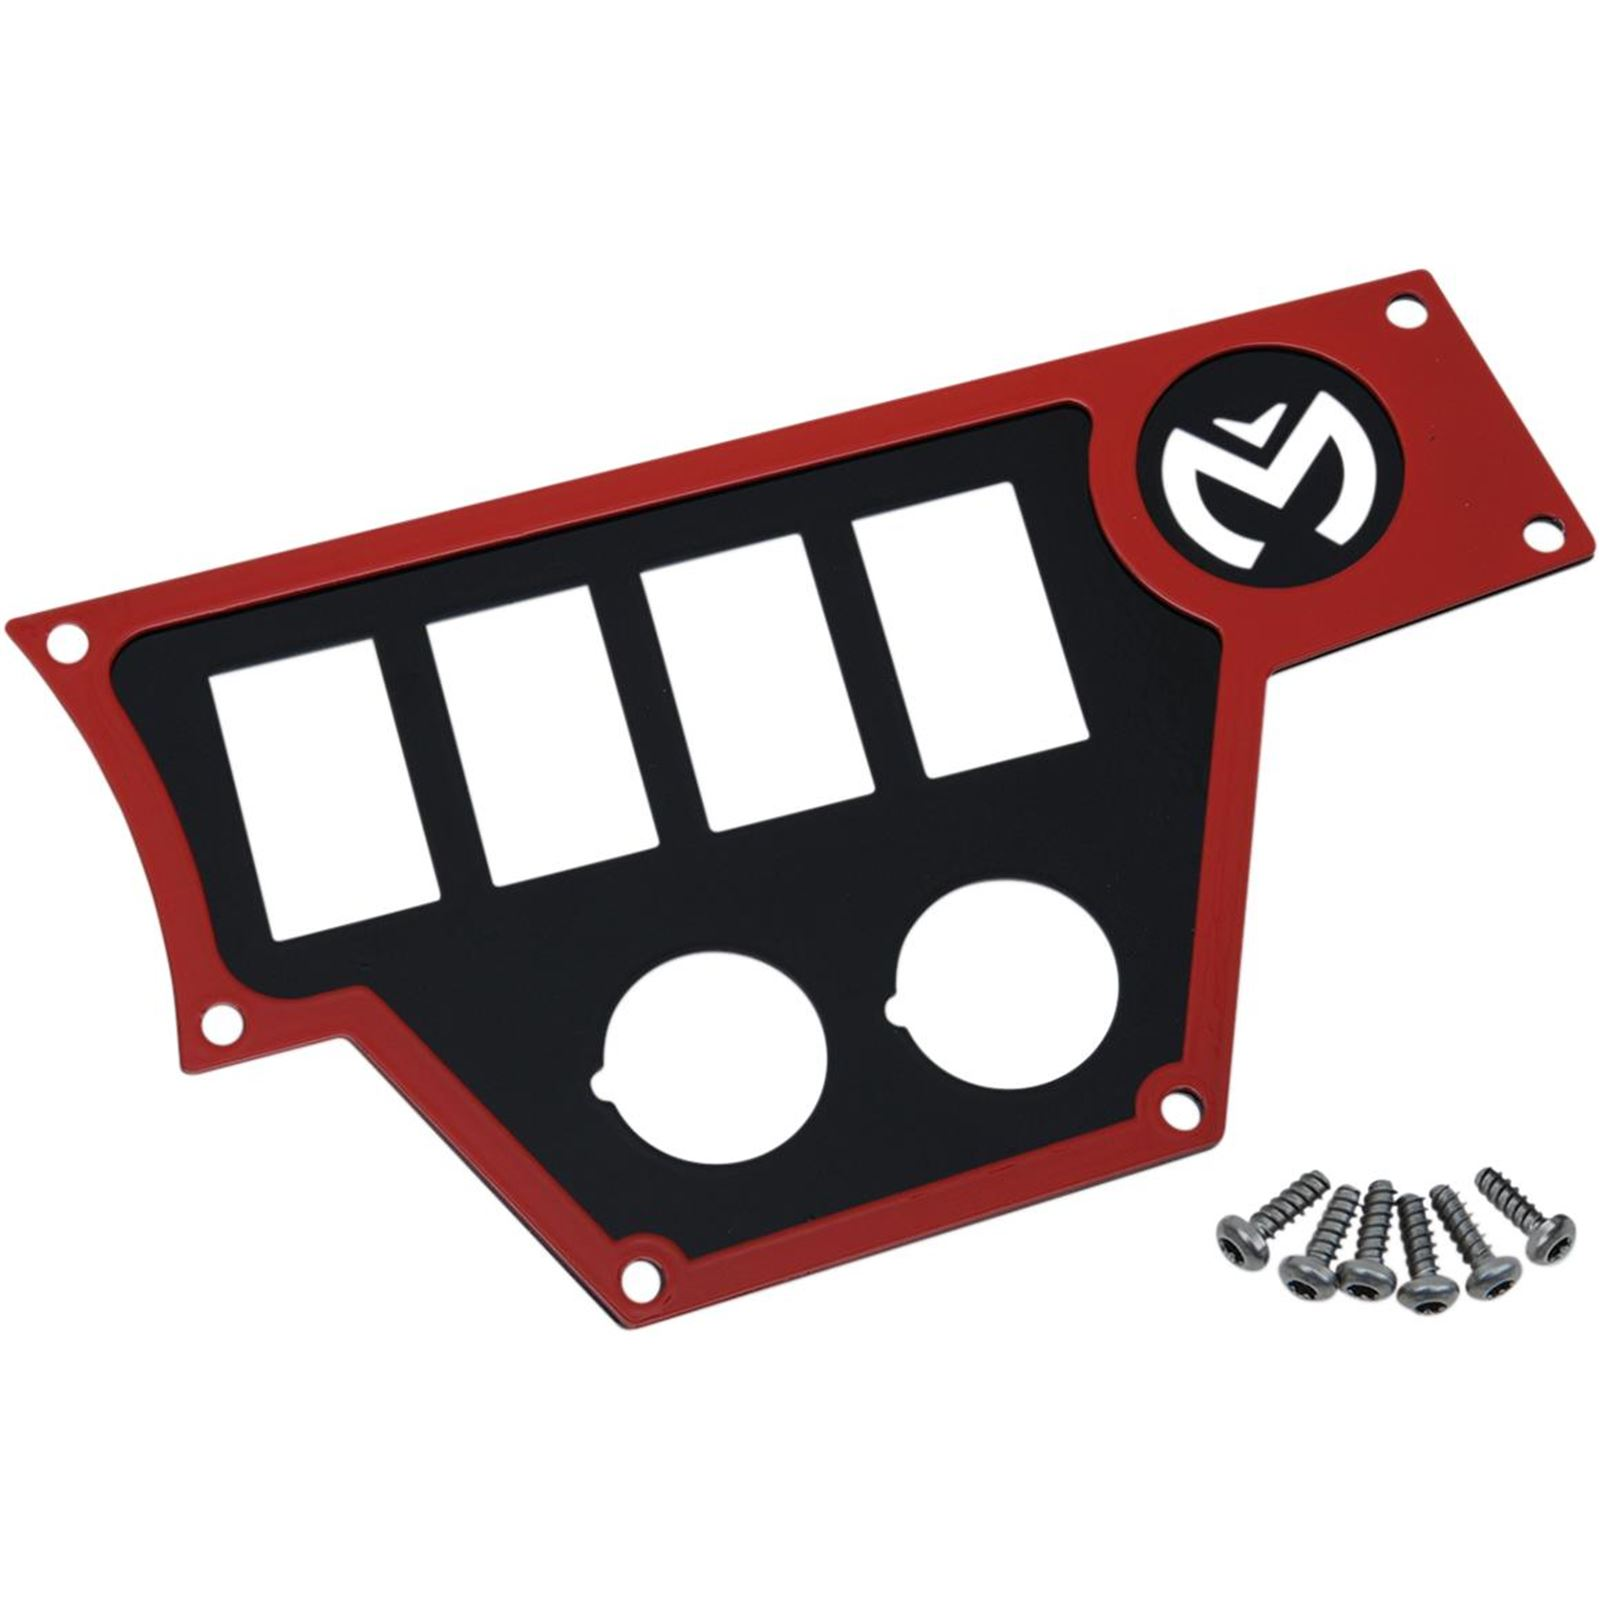 Moose Large Dash Plate - Right - Red - RZR